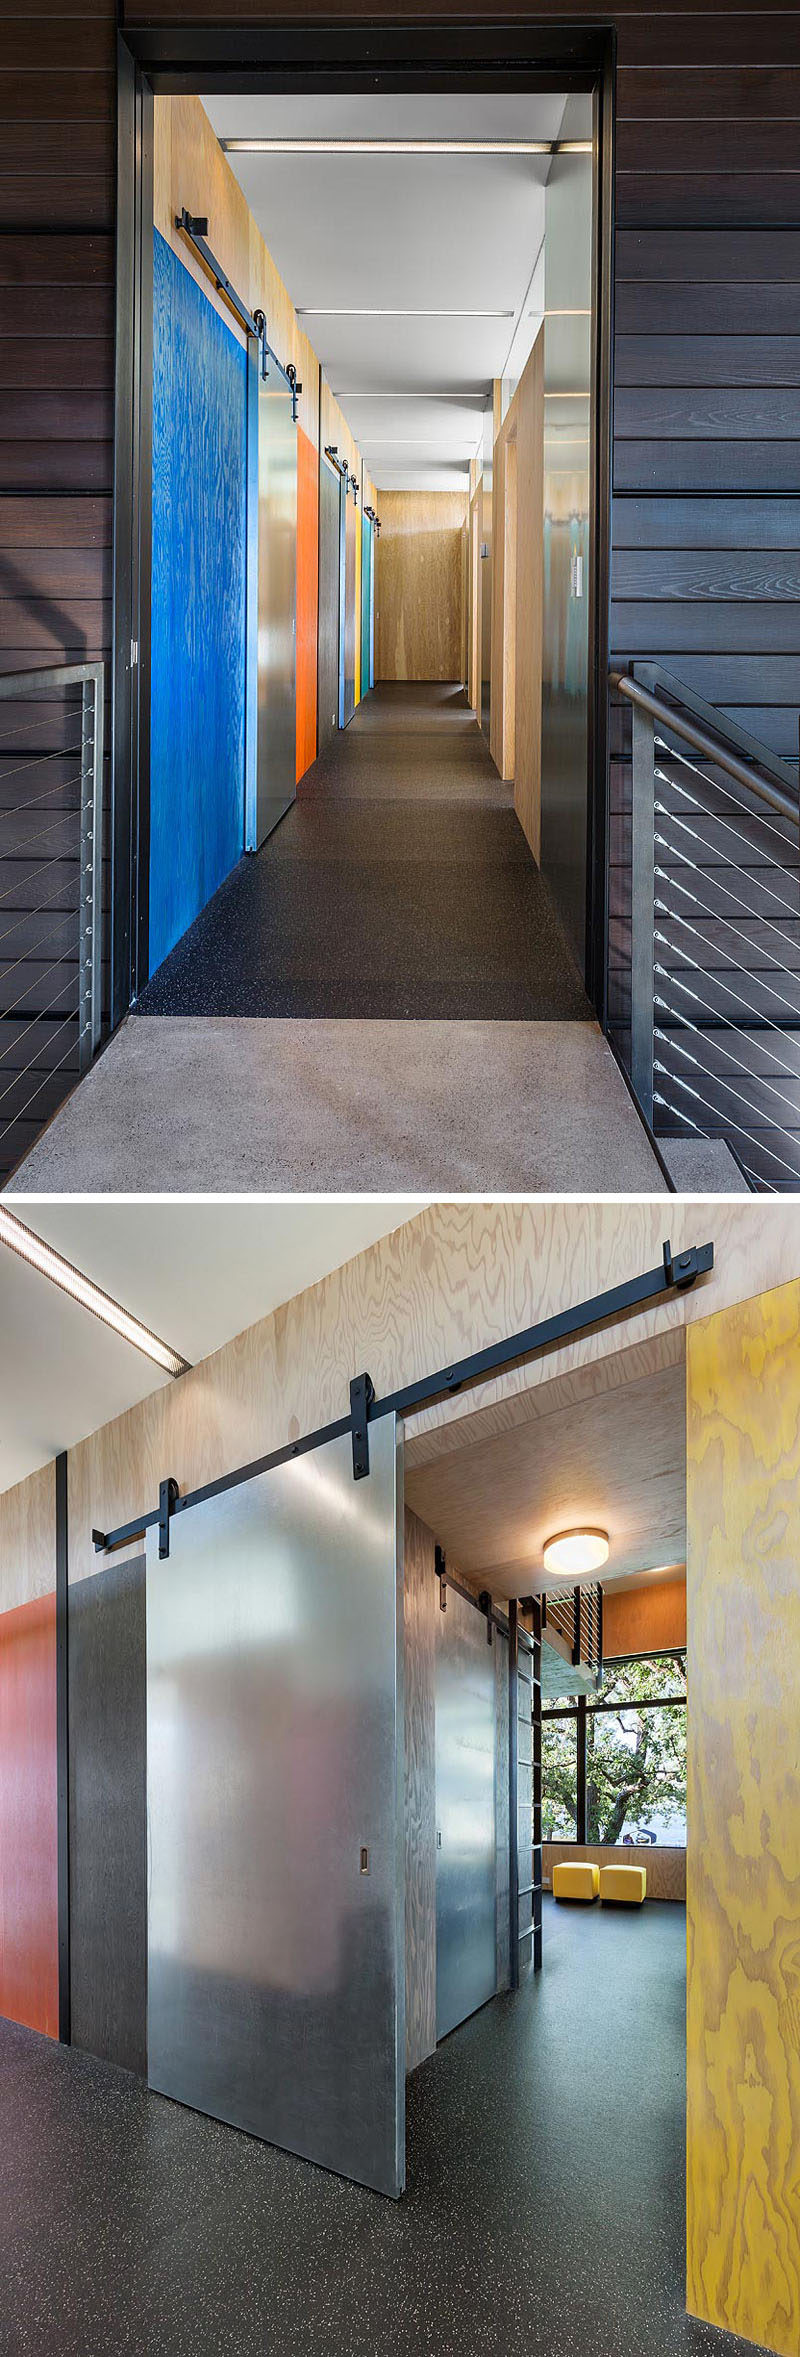 This industrial modern house has colorful stained plywood walls and metallic sliding barn doors. #StainedPlywood #SlidingBarnDoors